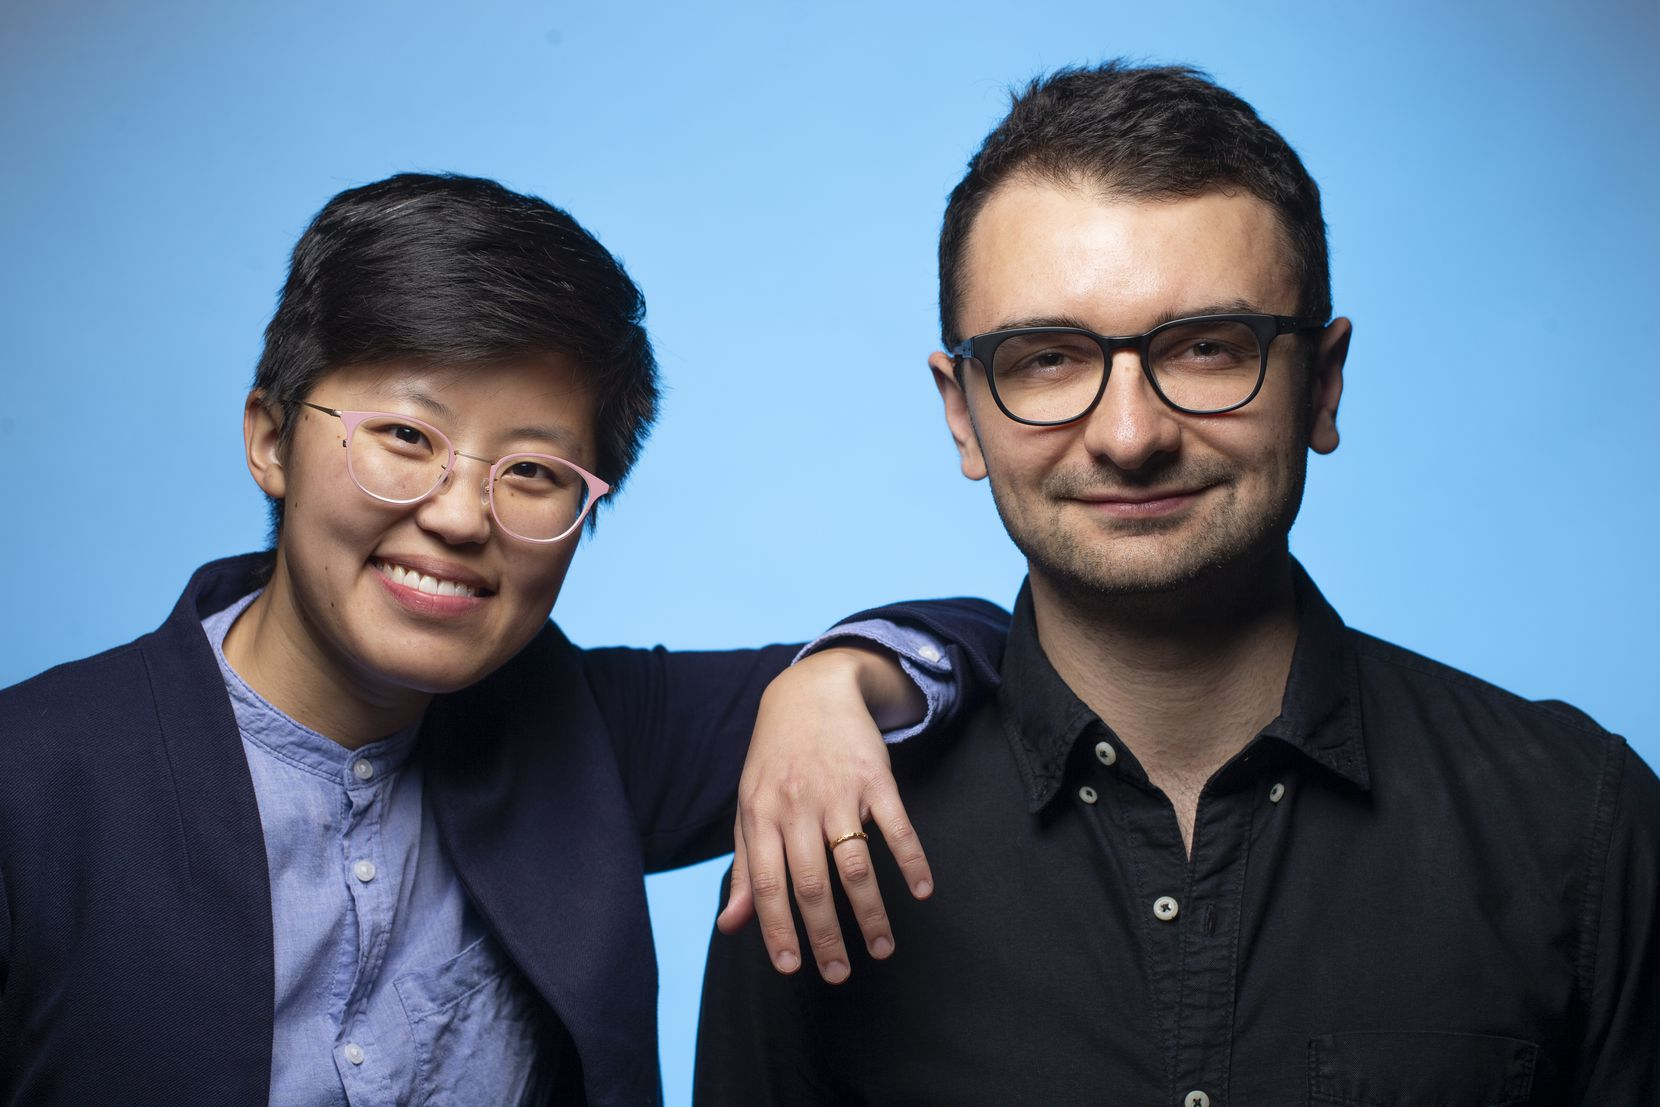 Former News features intern Irena Fischer-Hwang (left) and Tim Diovanni, in 2019 at The Dallas Morning News studio.